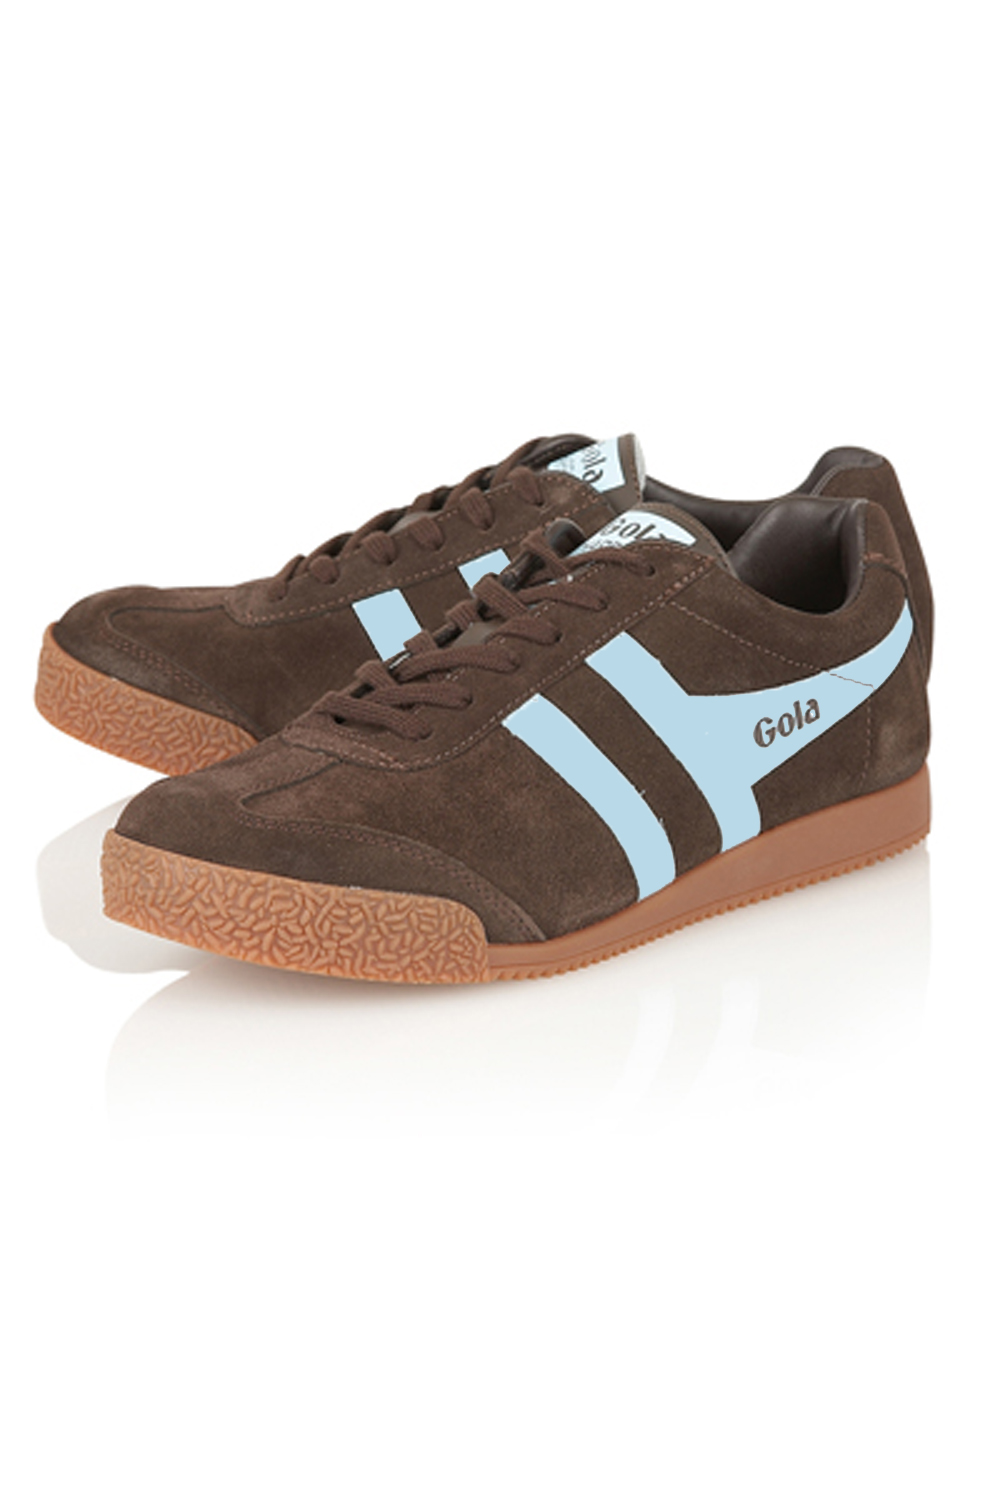 Gola-Harrier-Suede-Classic-Vintage-Lace-Up-Sneakers-Mens-Trainers-Low-Top-Shoes thumbnail 17